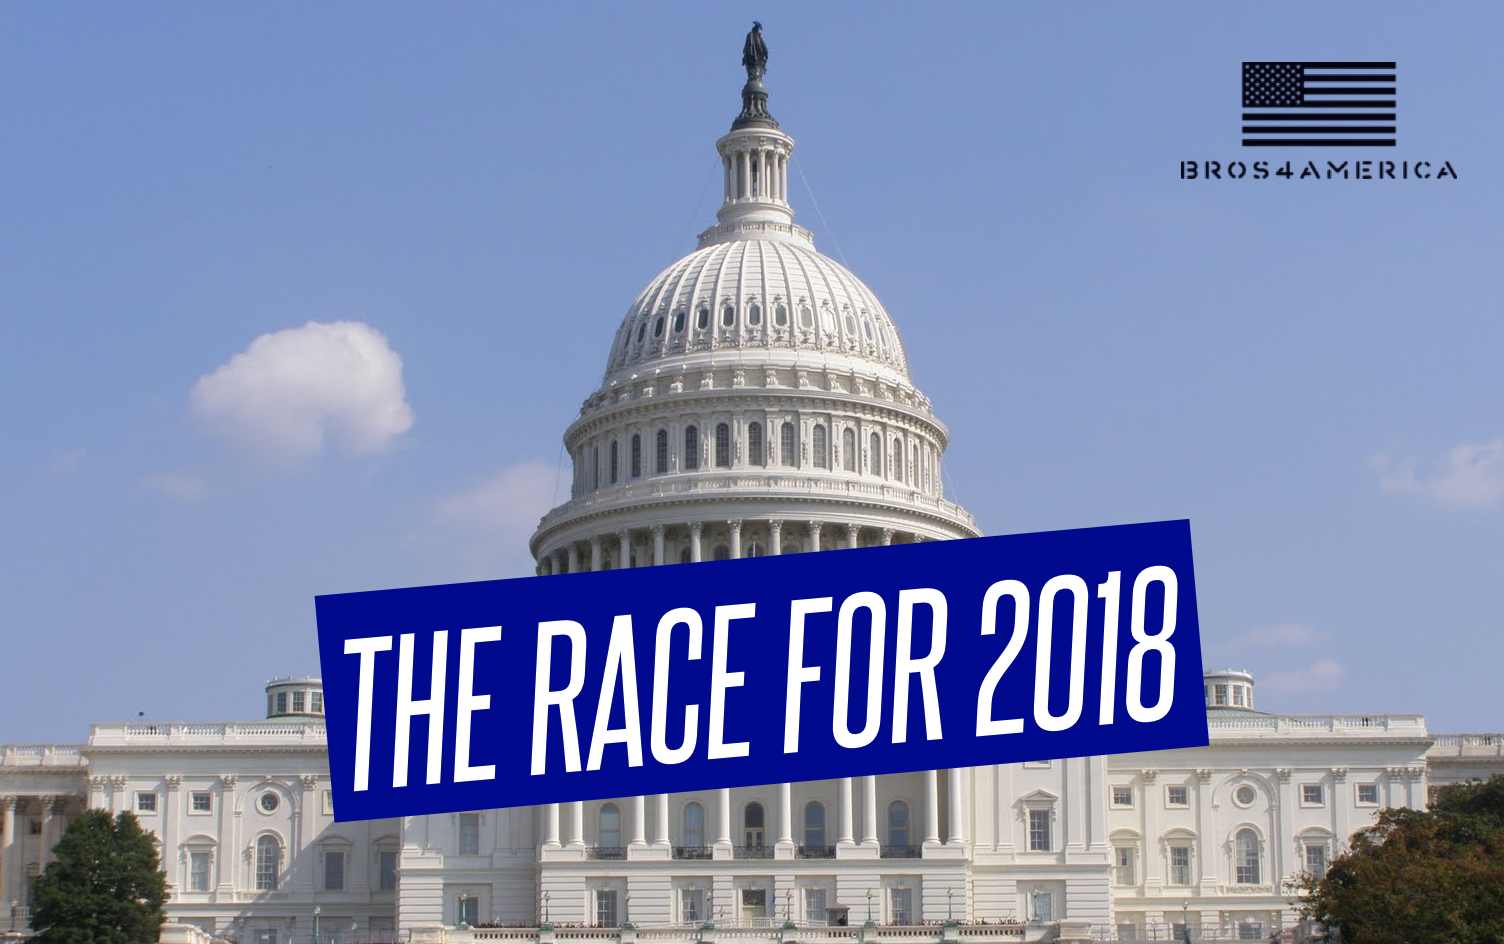 The Race for 2018